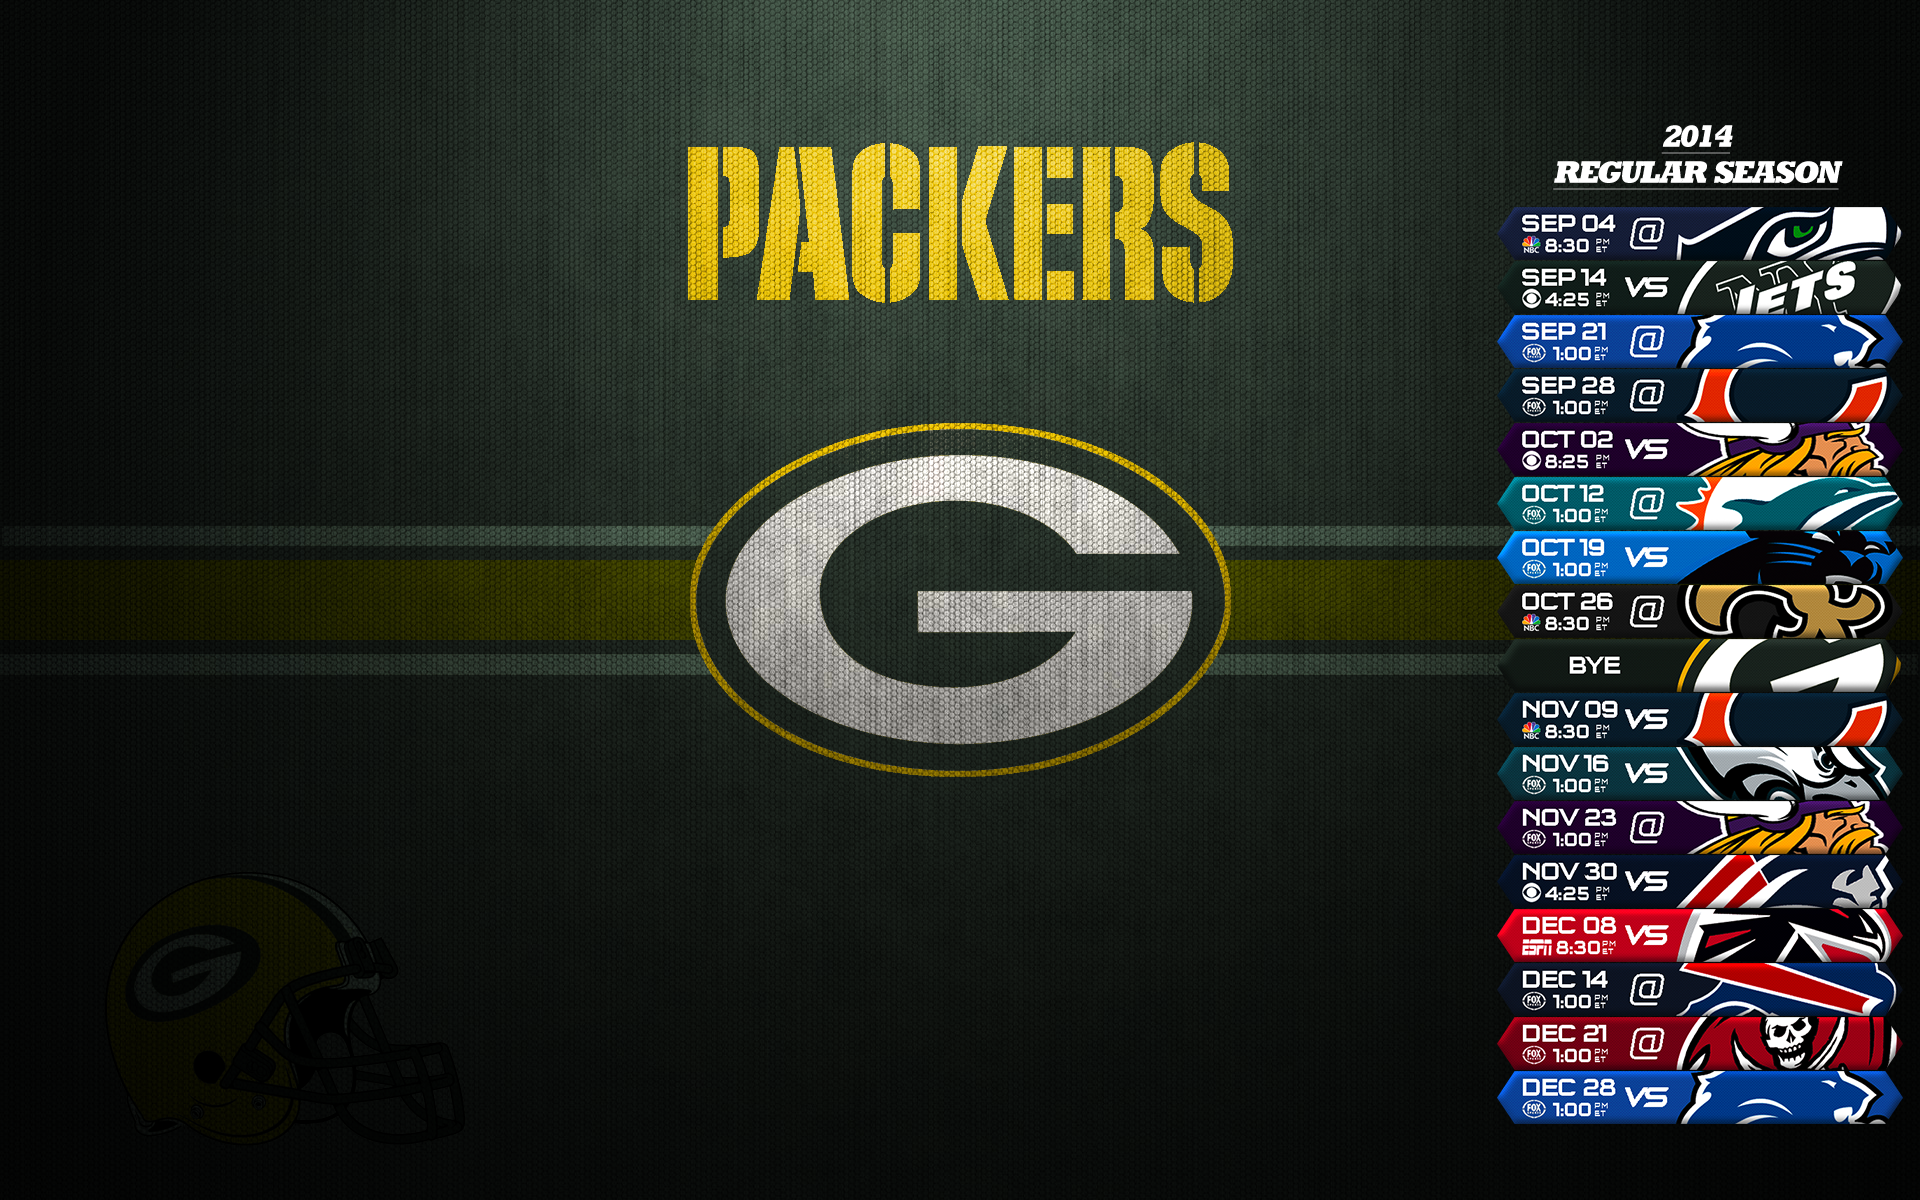 Green baía Packers Schedule 2014 wallpaper